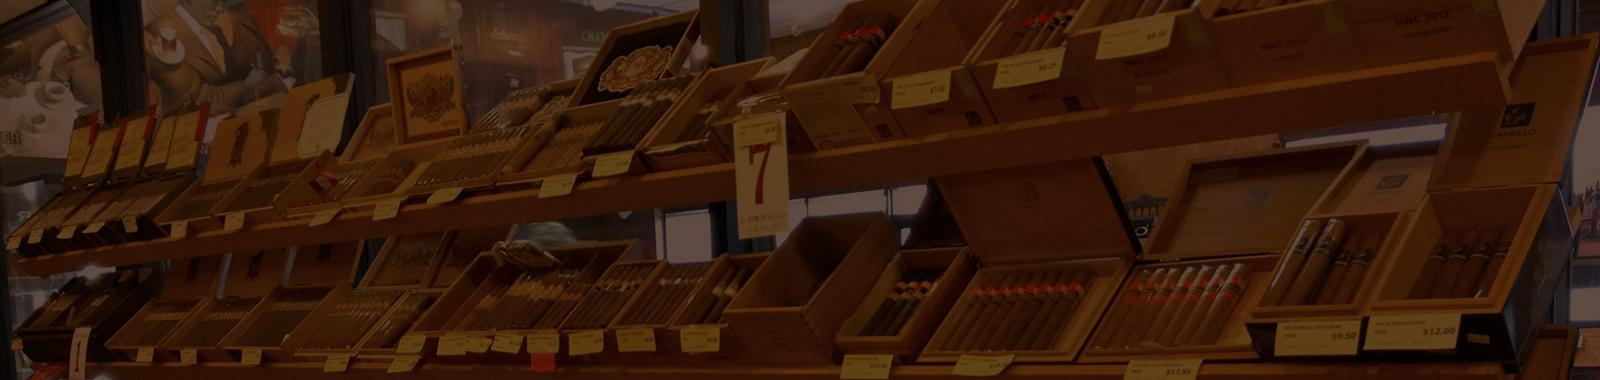 CC_Cigars_Header-cigars-pipes-humidors-cigar shop-Cigar Chateau-Wichita KS